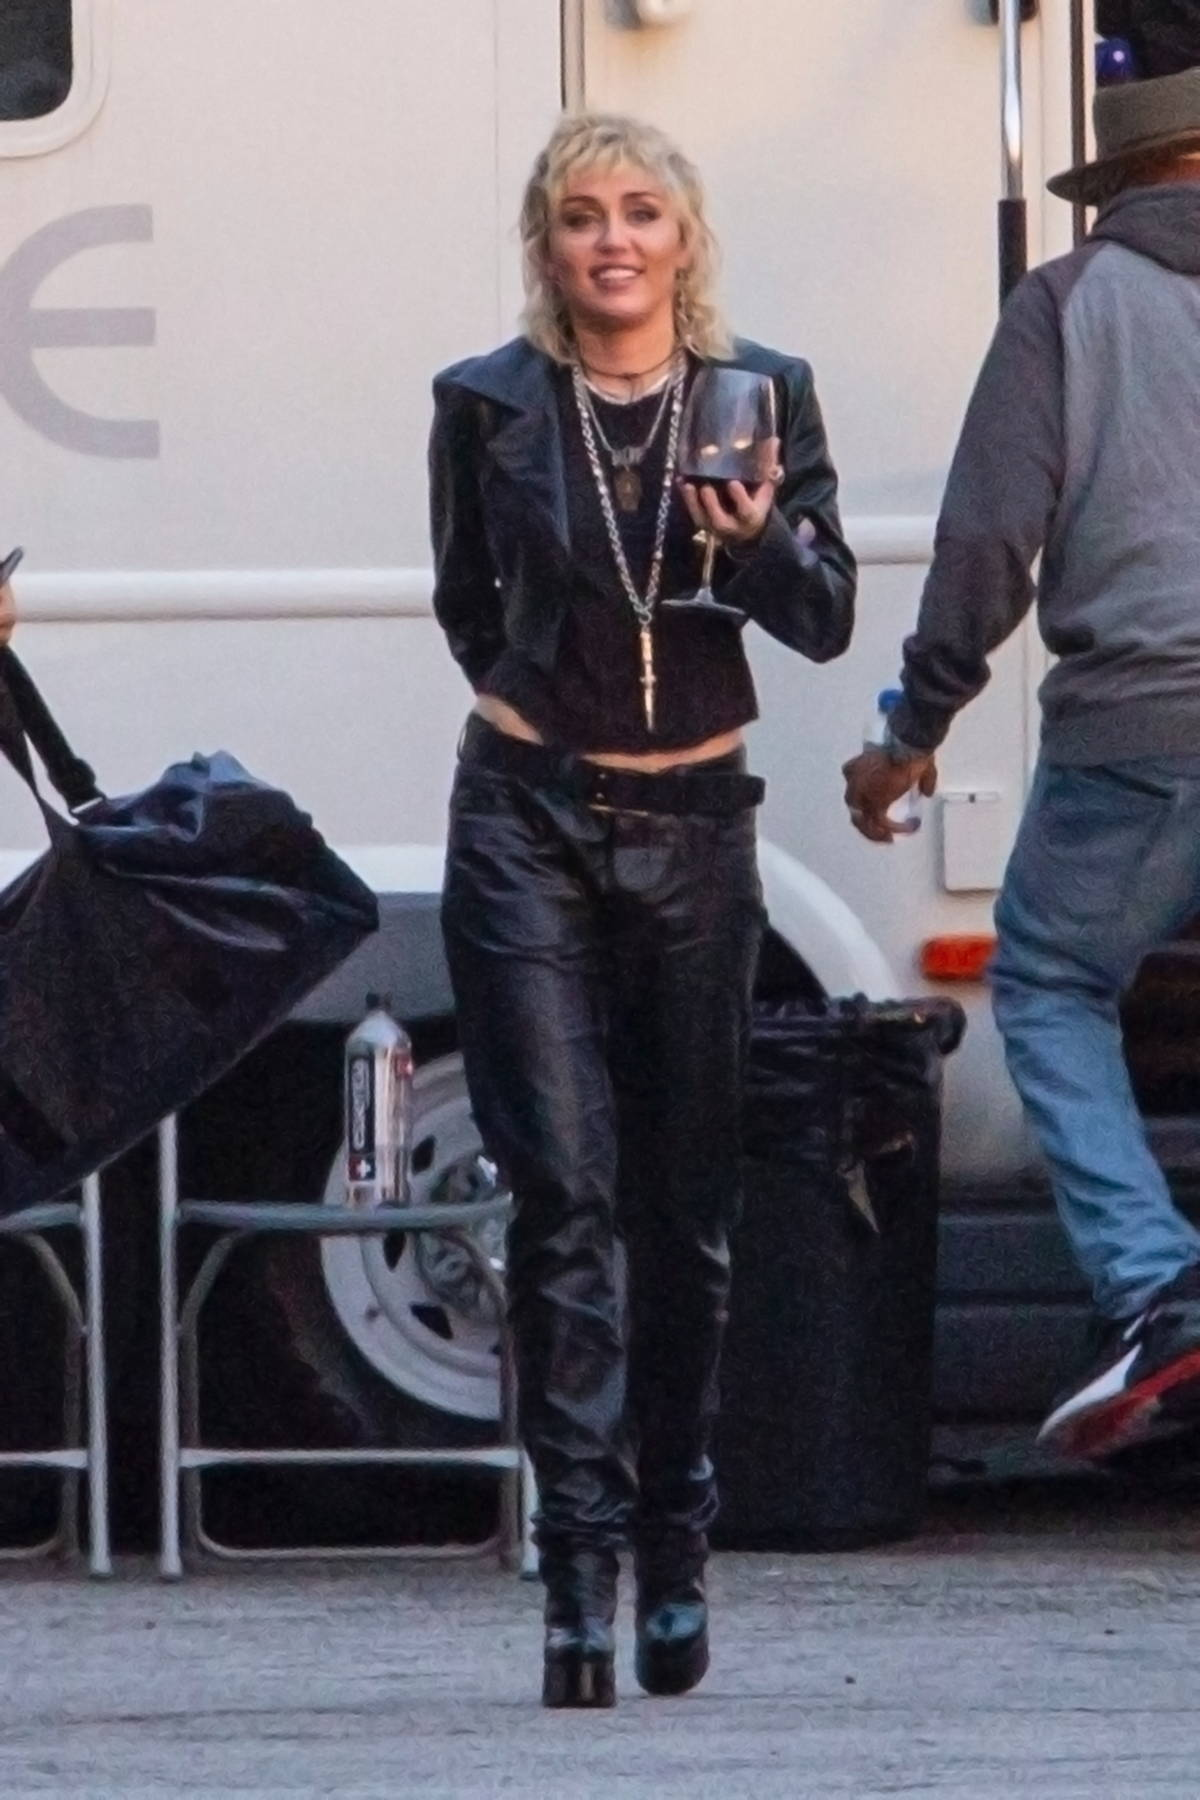 Miley Cyrus sips on some wine after a photoshoot at a studio in Burbank, California